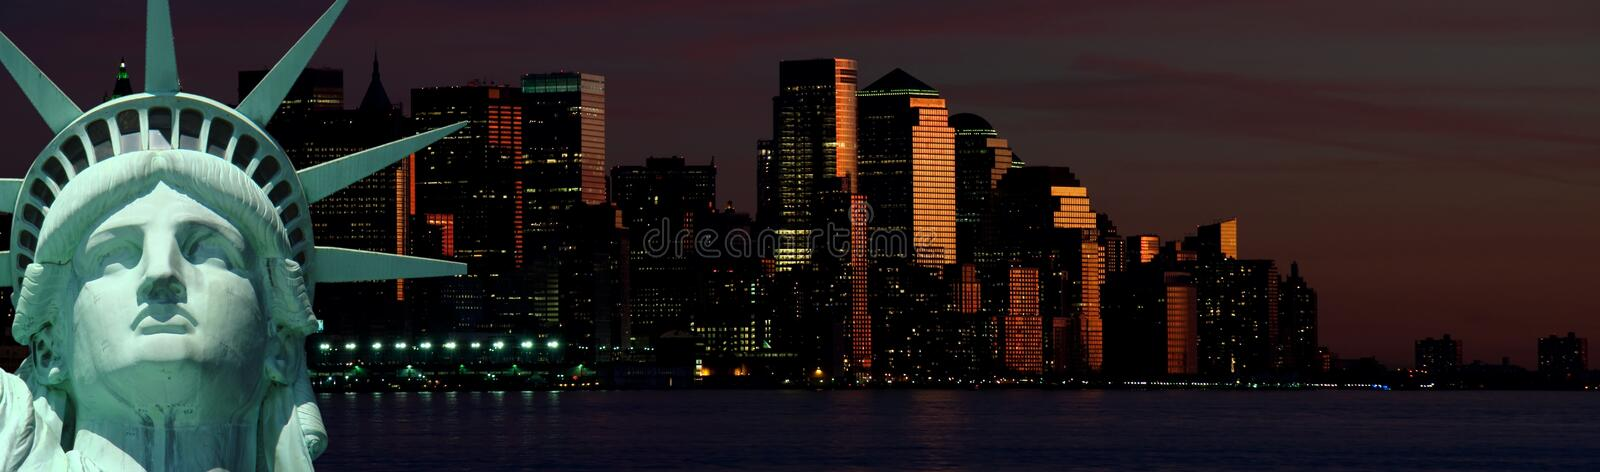 New york cityscape, tourism concept photograph stock photography